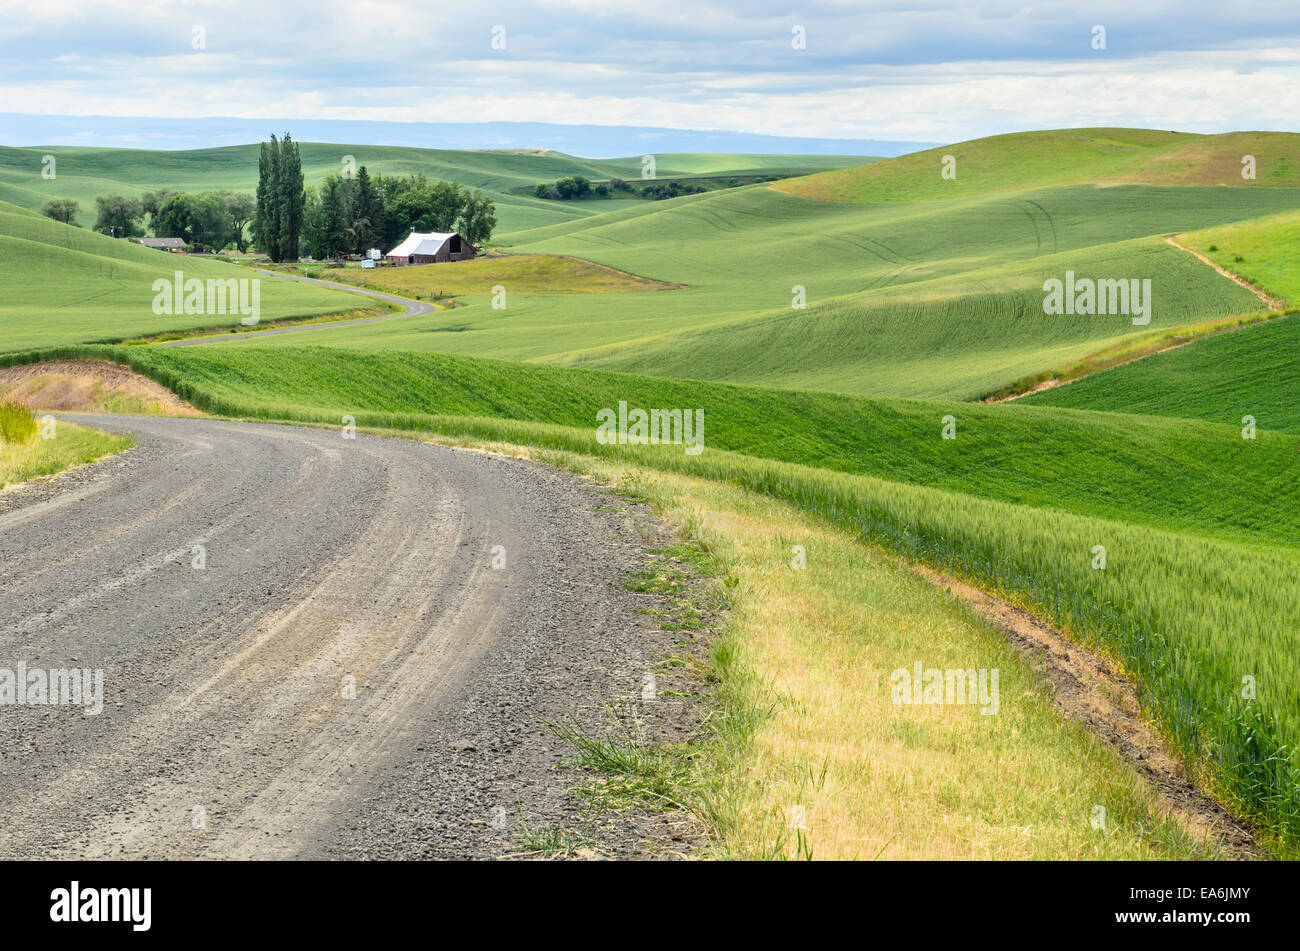 Usa washington state palouse scenic countryside stock Usa countryside pictures